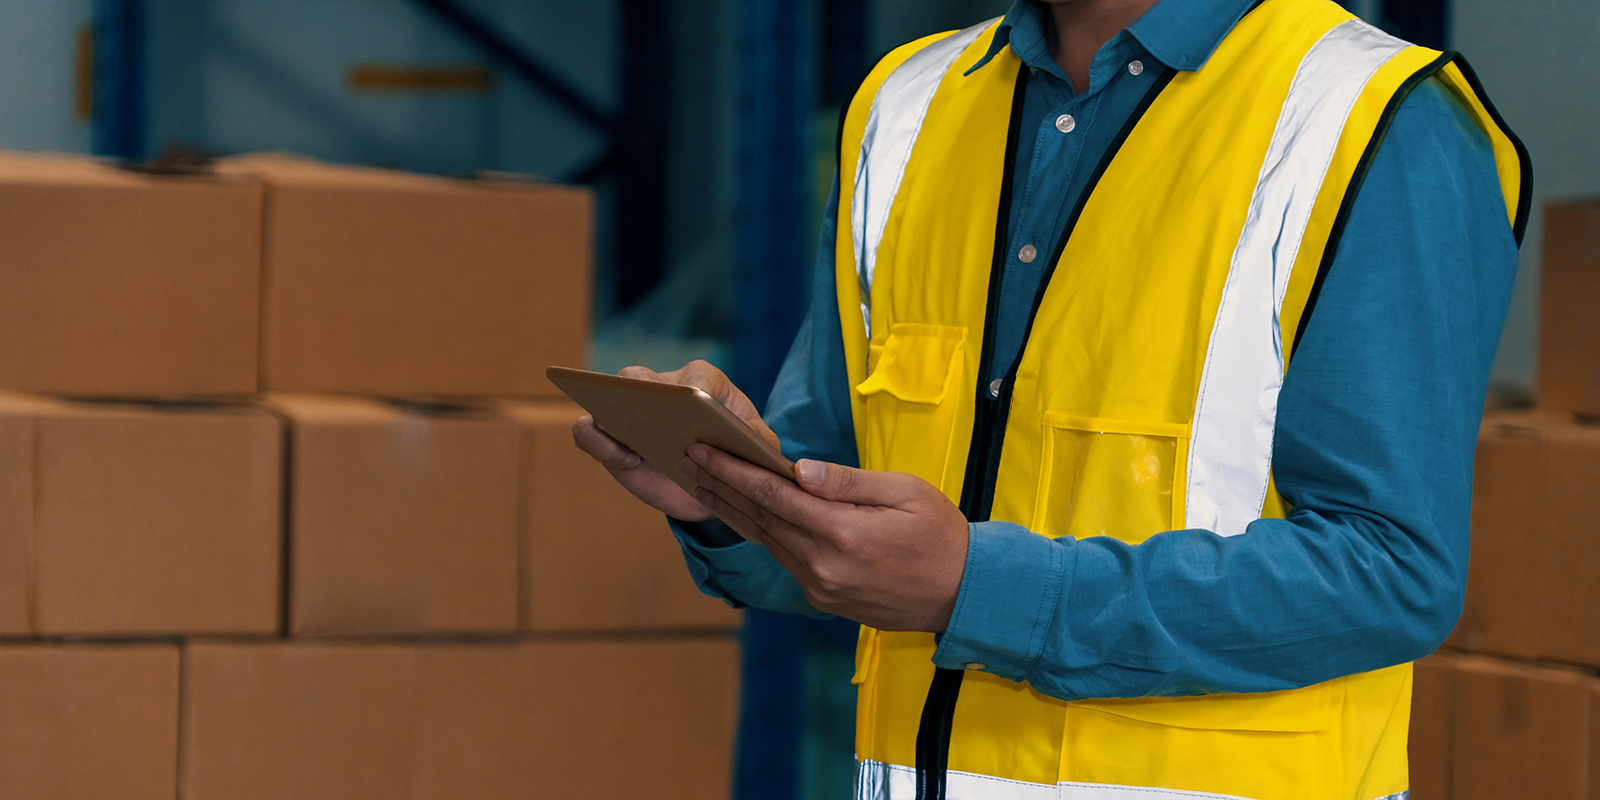 Asian warehouse worker checking packages in storehouse